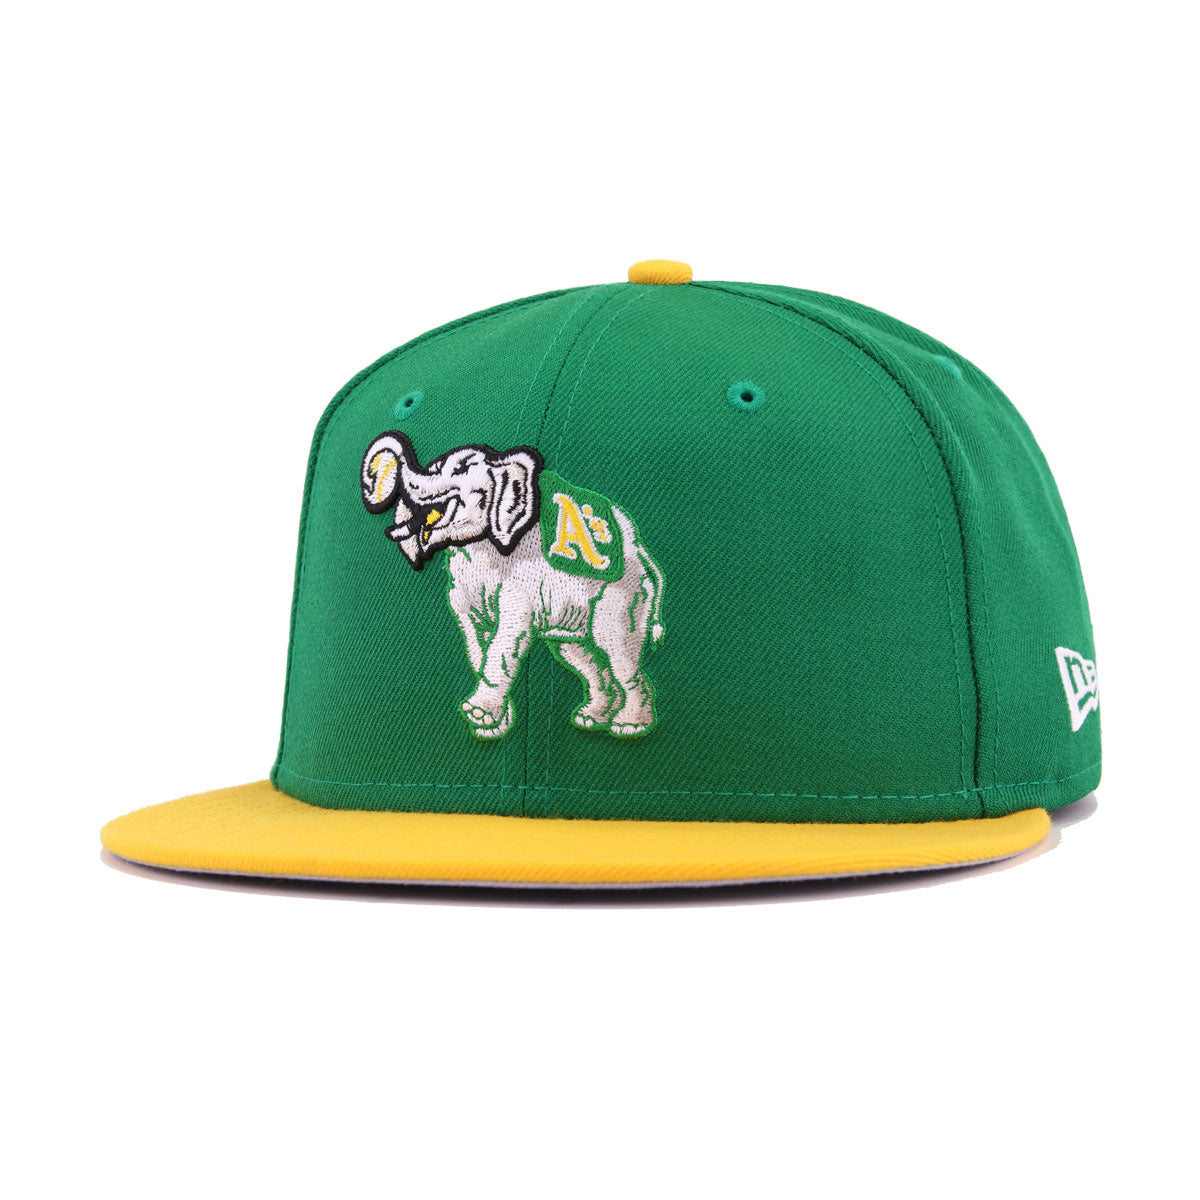 competitive price 17fe3 980de Oakland Athletics Kelly Green A's Gold Stomper New Era 9Fifty Snapback